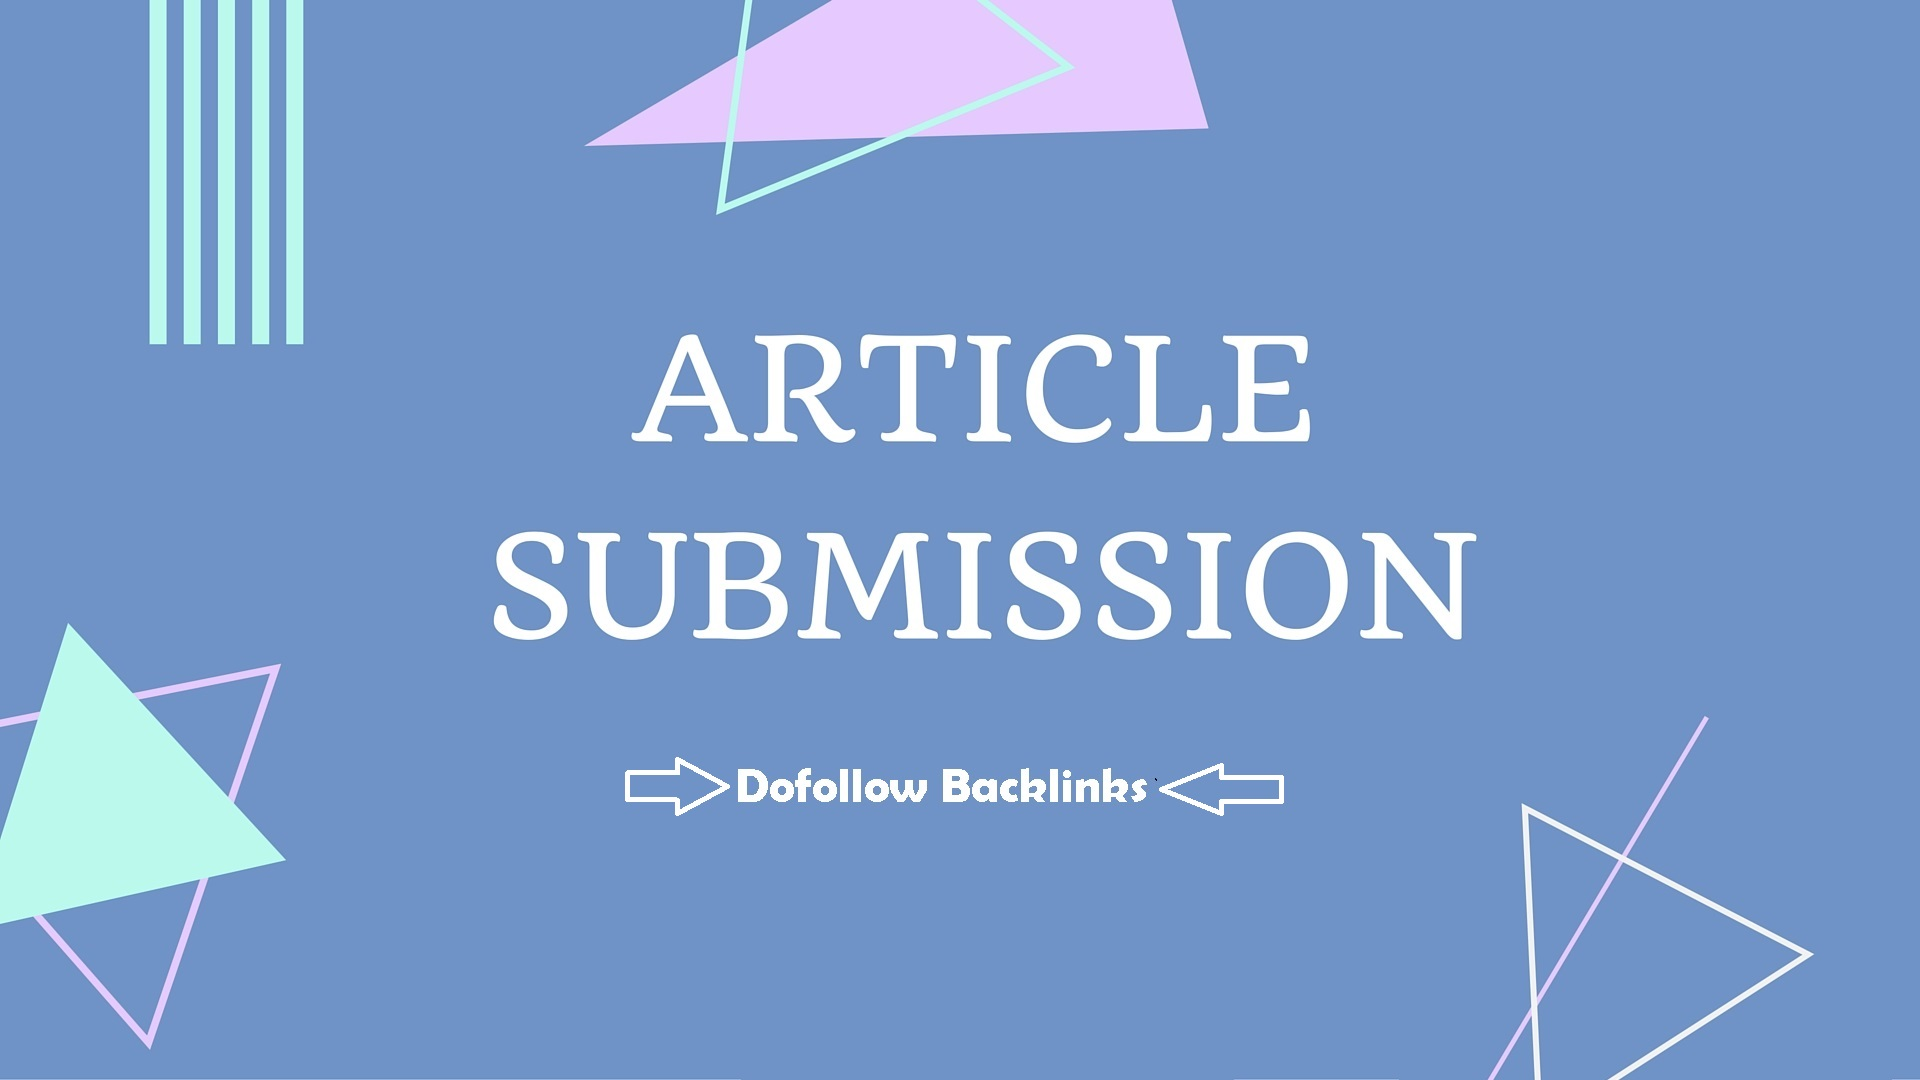 i will create 10 article submission